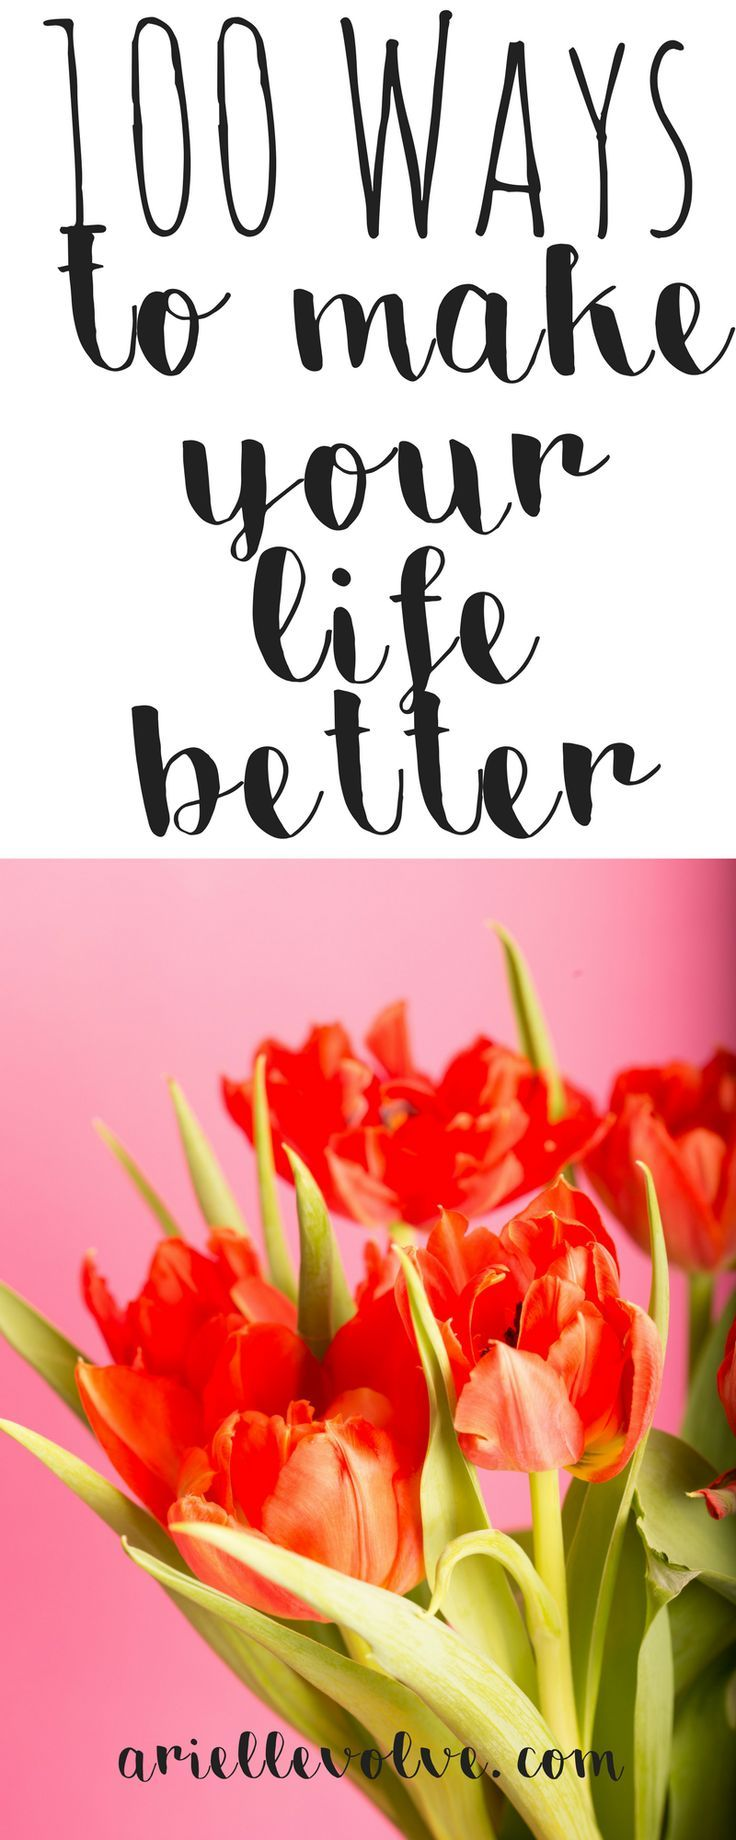 100 simple ways to improve and better your life each day, including self care, positivity, and kindness.